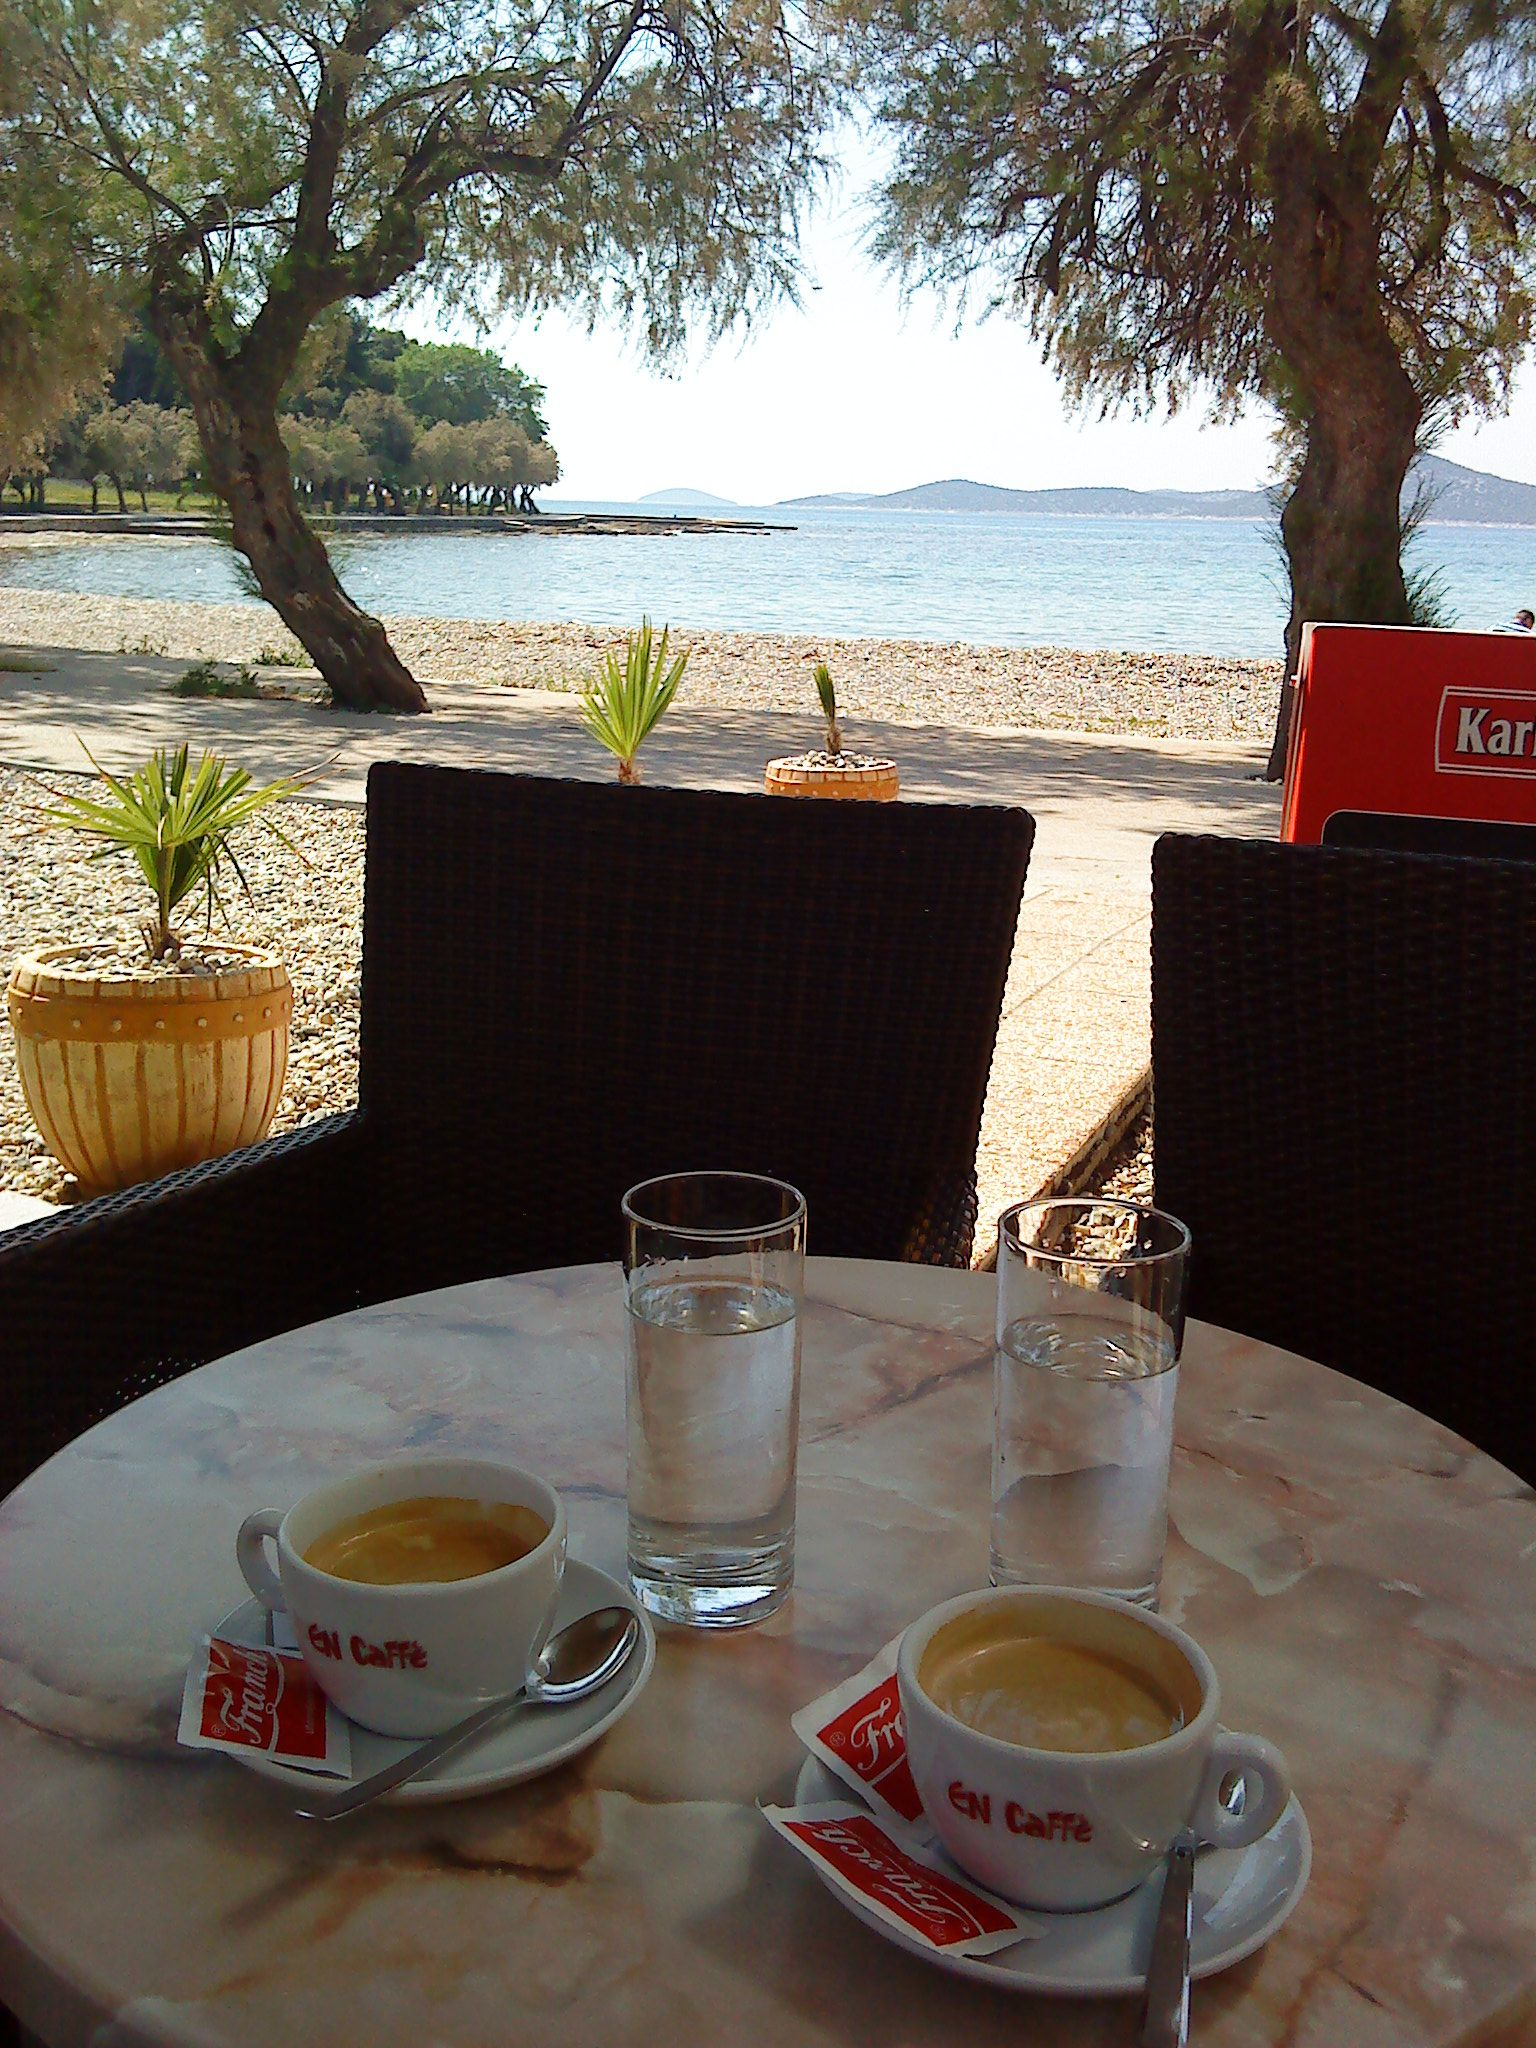 Coffee At The Beach Goodmorning Beautiful You So Much D Have A Great Day Didnt Write But Got You Something D